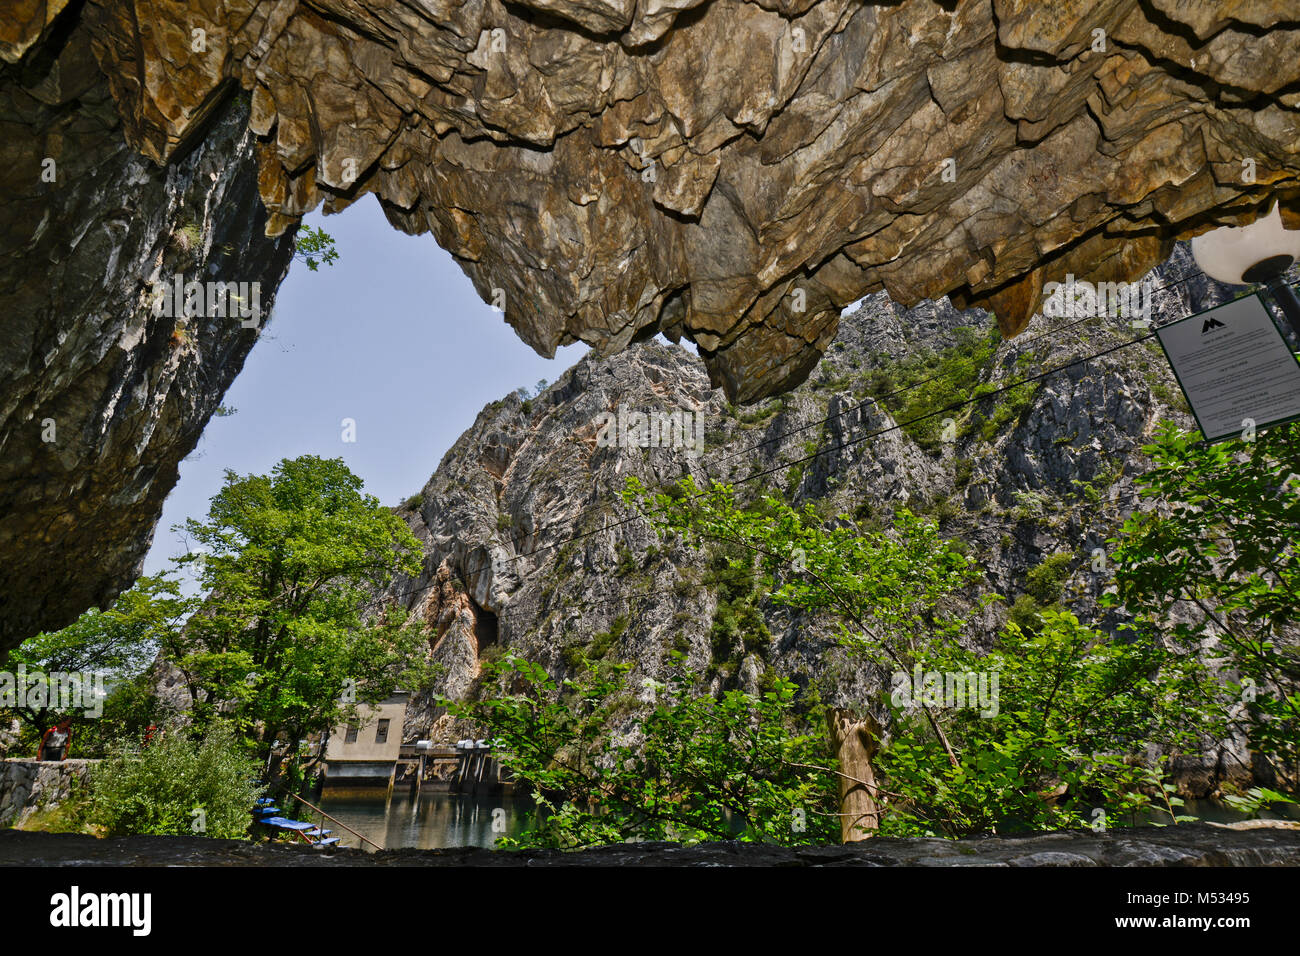 Matka Canyon, view from inside a cave, Macedonia - Stock Image